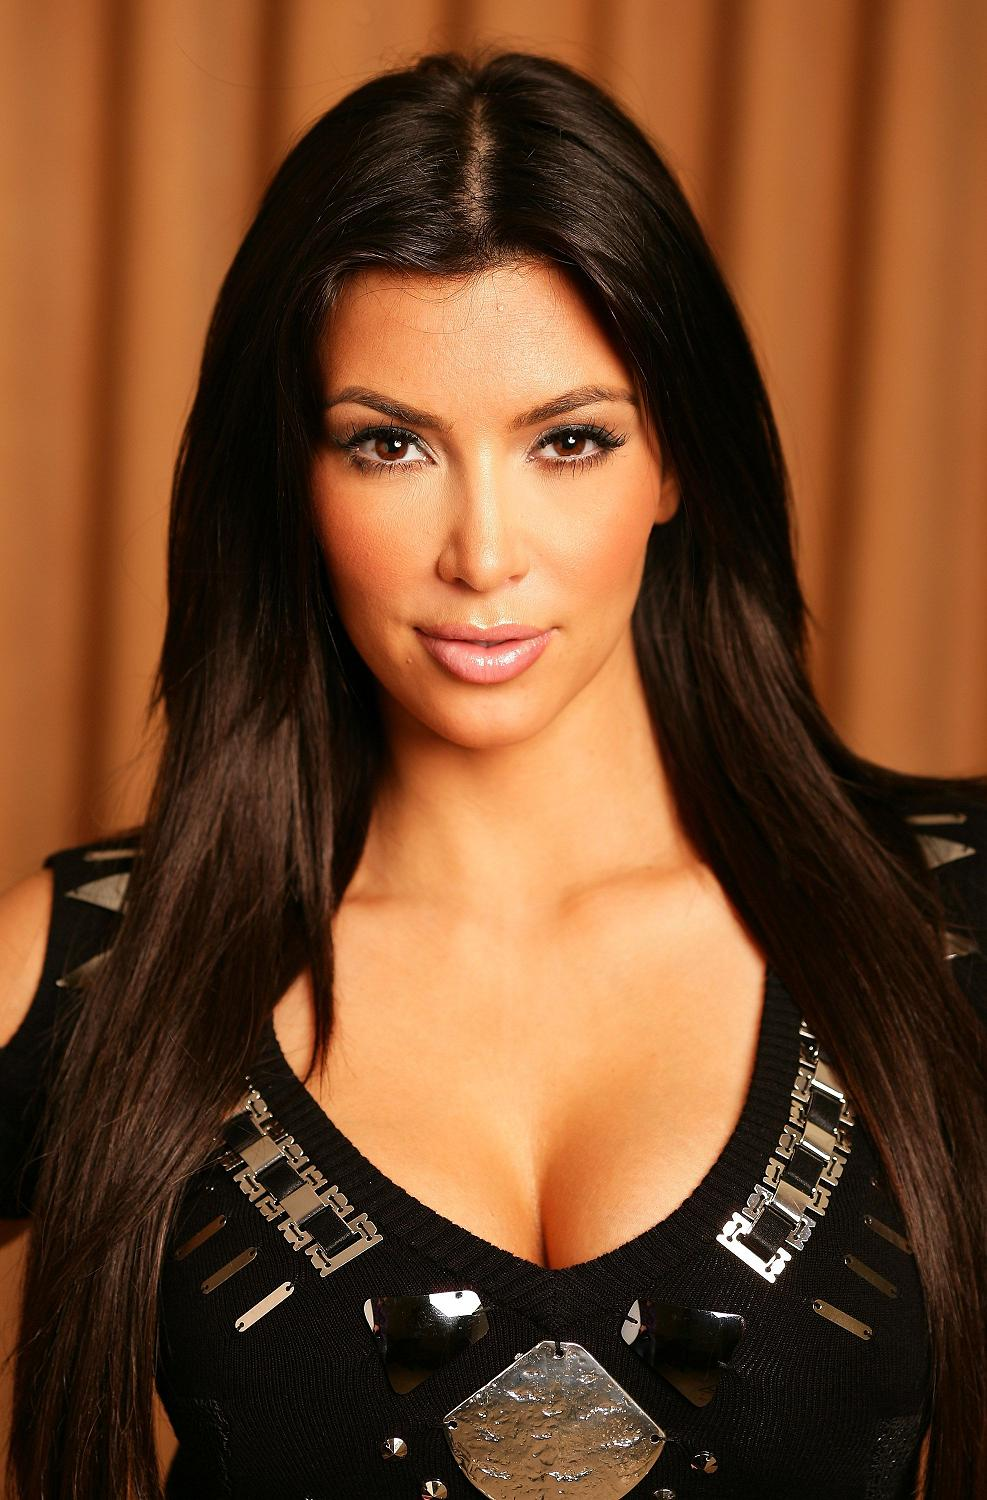 Hot Kim Kardashian Photoshoot Pictures - On Celebs World-4609